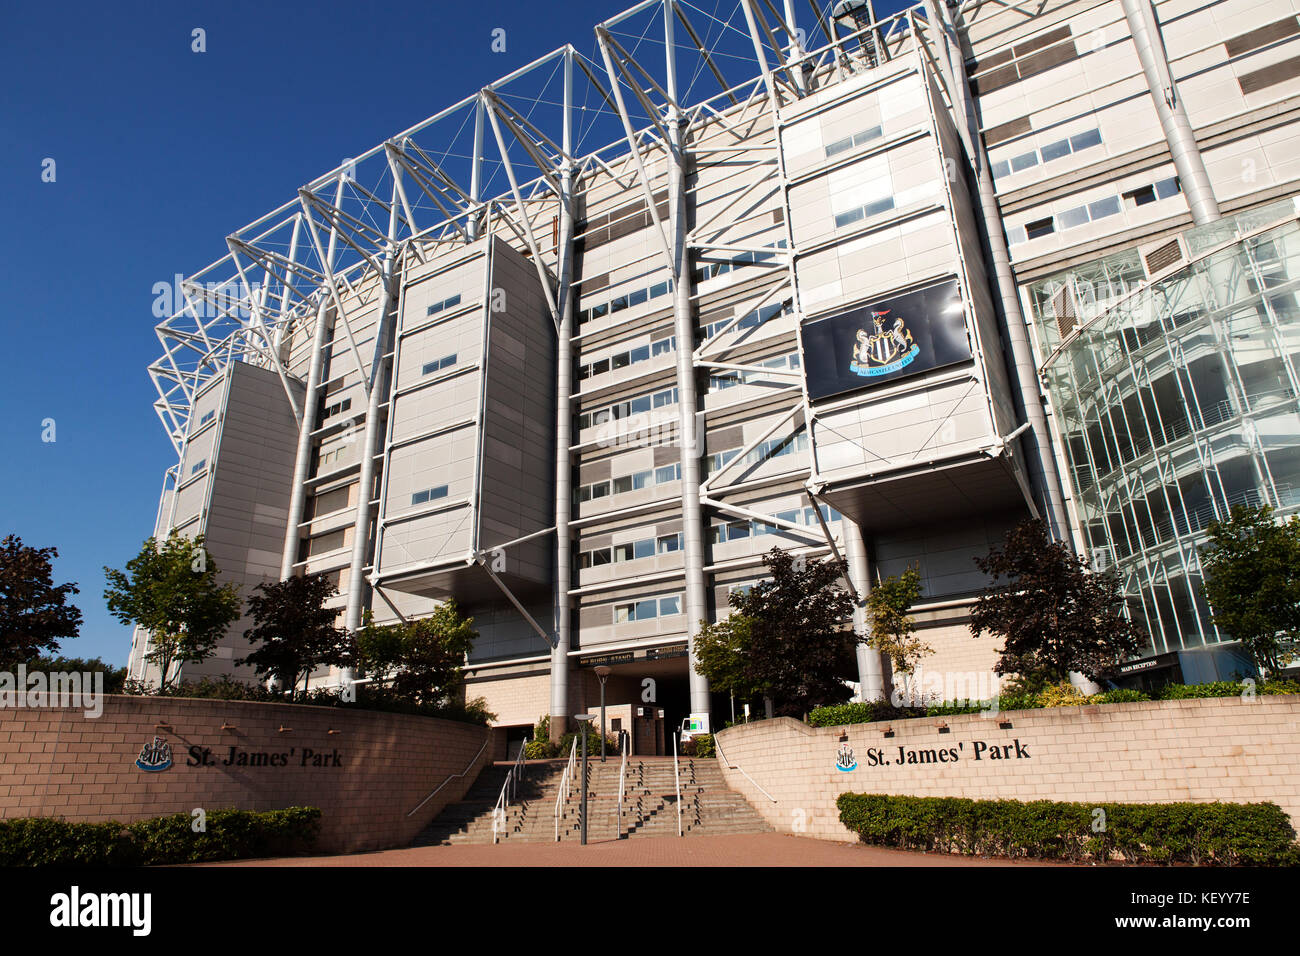 Nufc stock photos nufc stock images alamy for Newcastle home